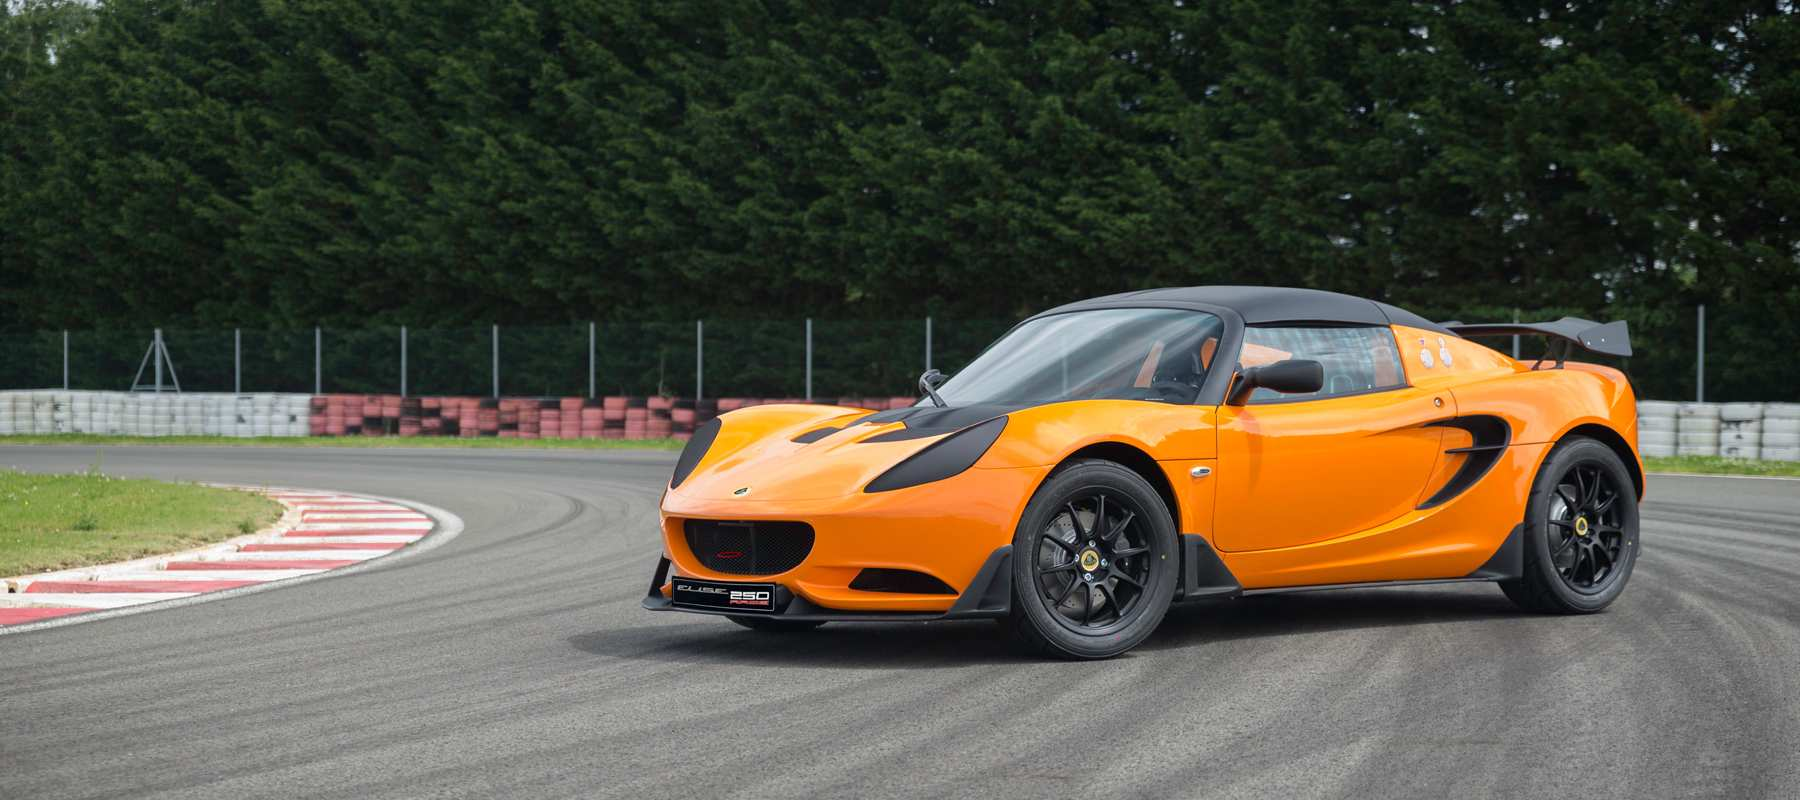 lotus elise race 250 fkm lotus cars belgium. Black Bedroom Furniture Sets. Home Design Ideas